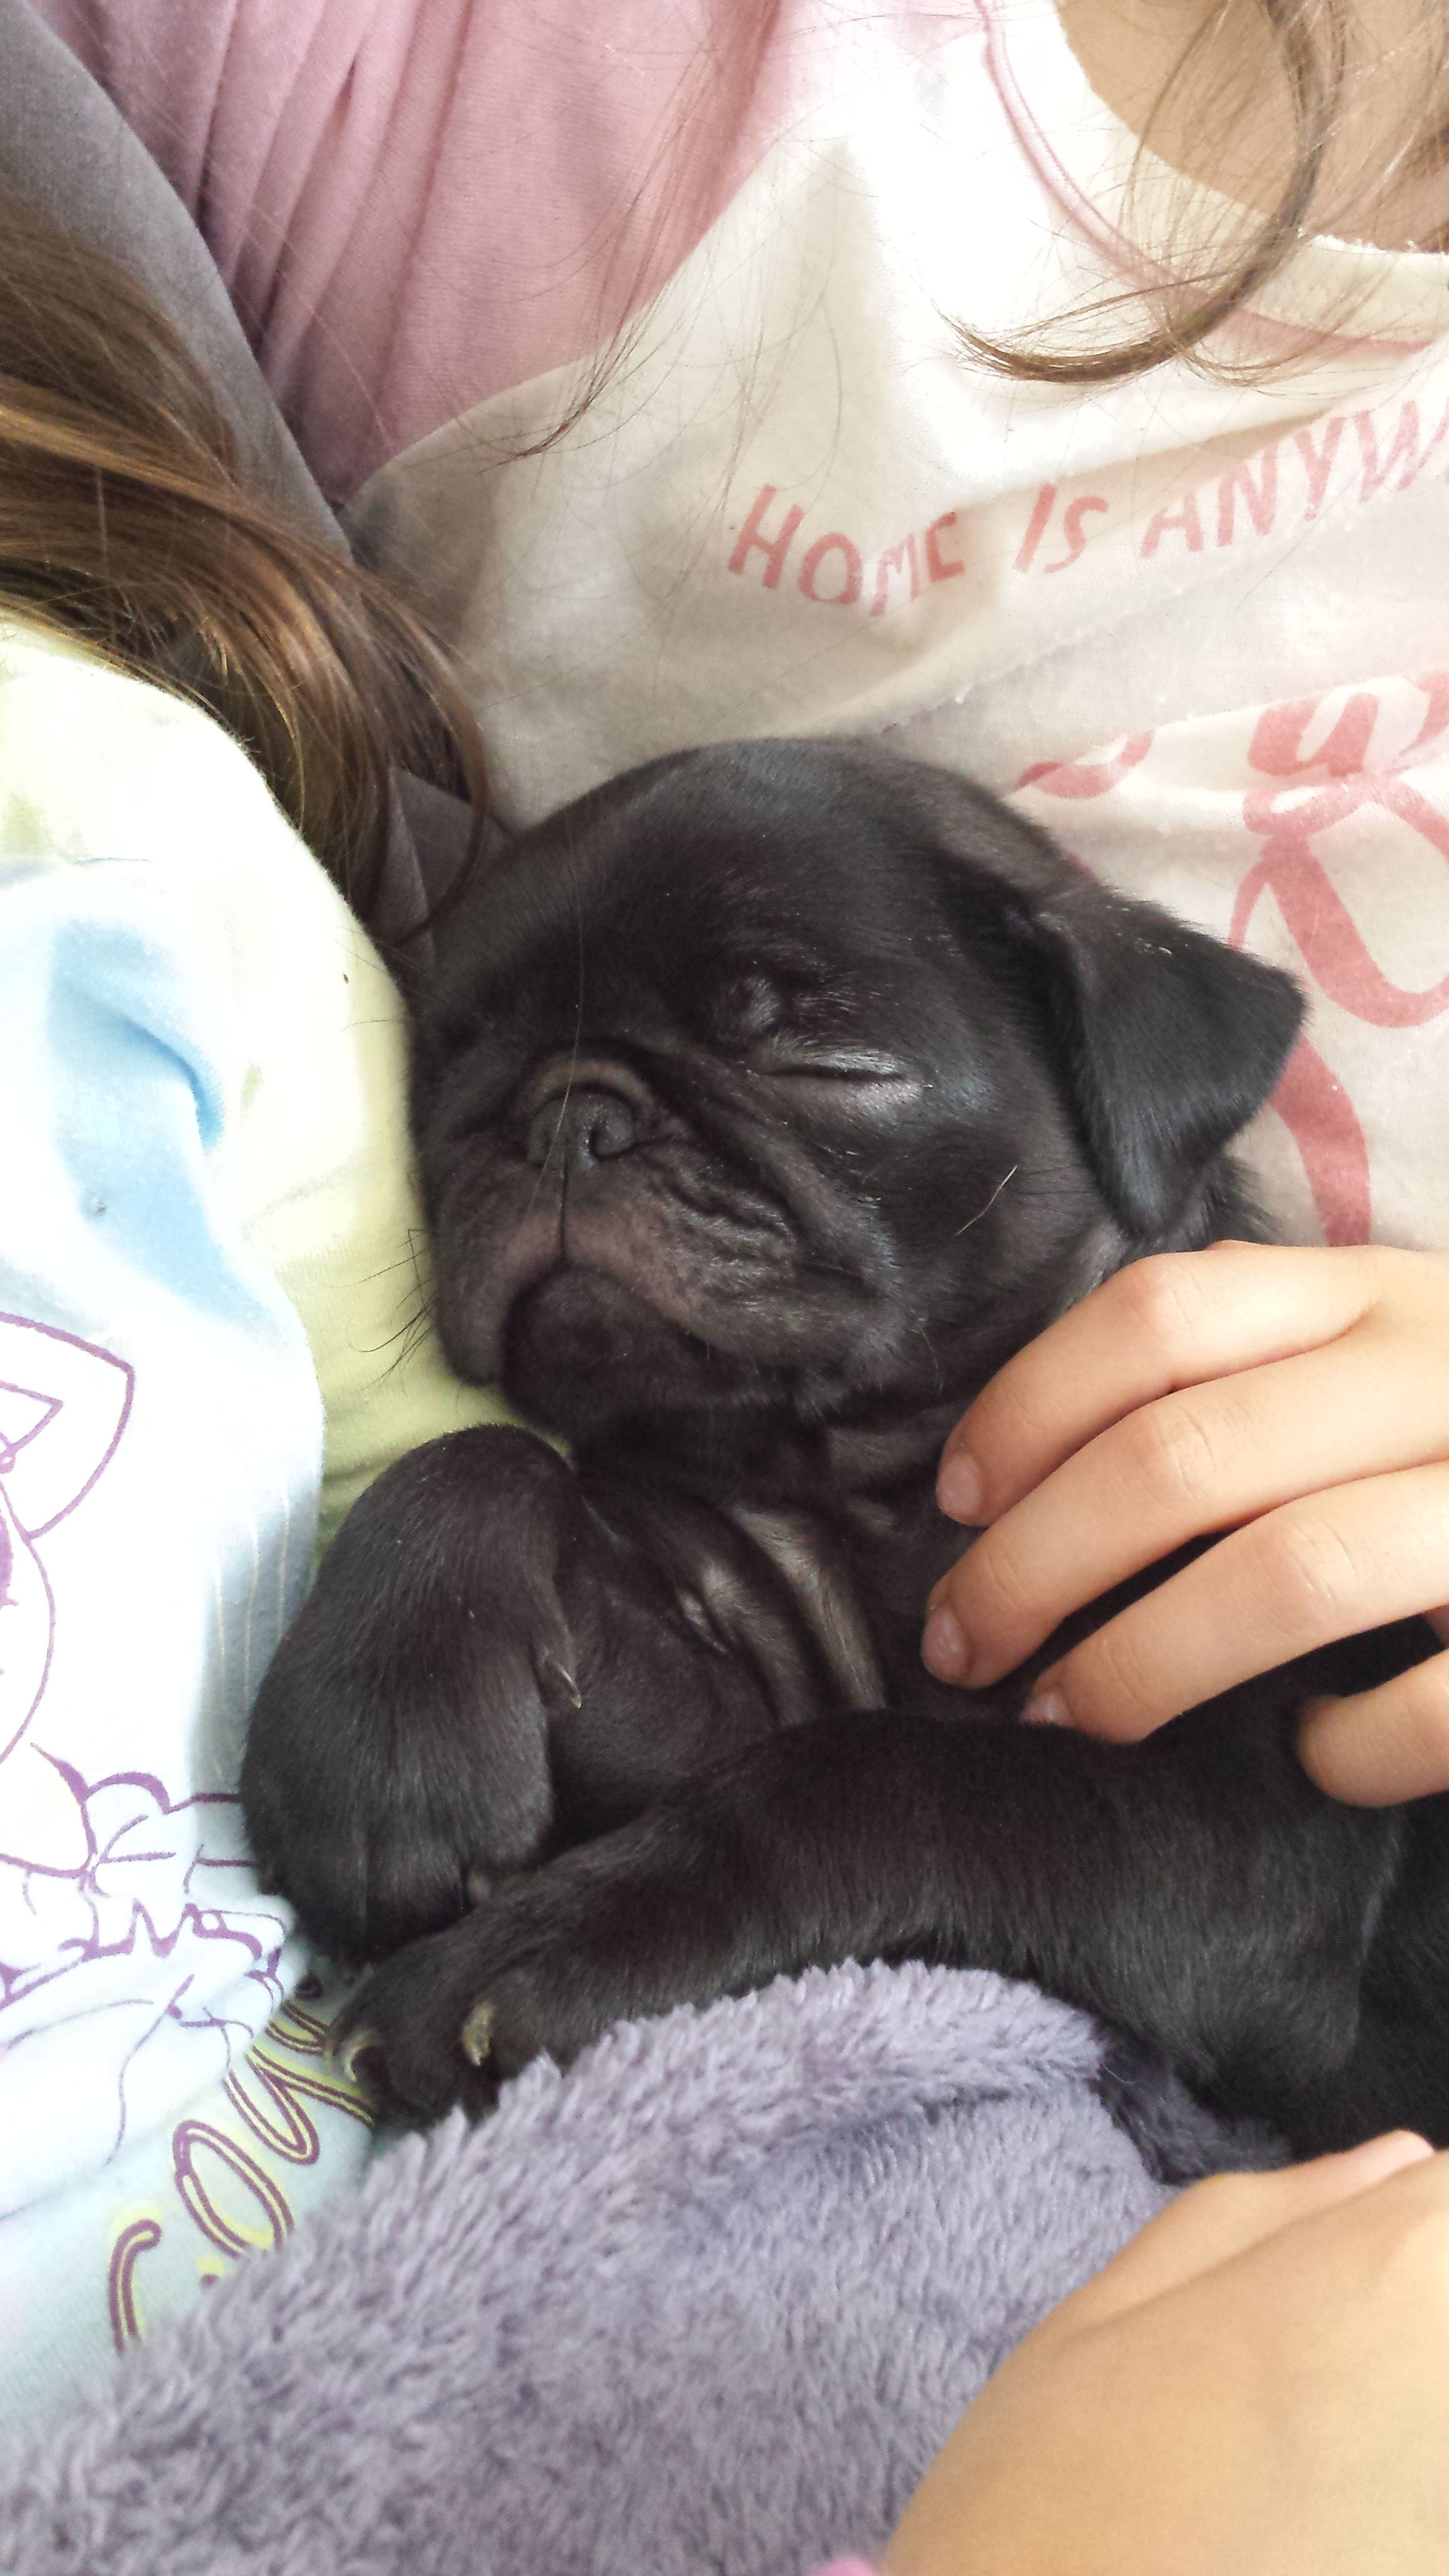 Adorable Baby Baby Pugs Cute Pugs Pug Puppies